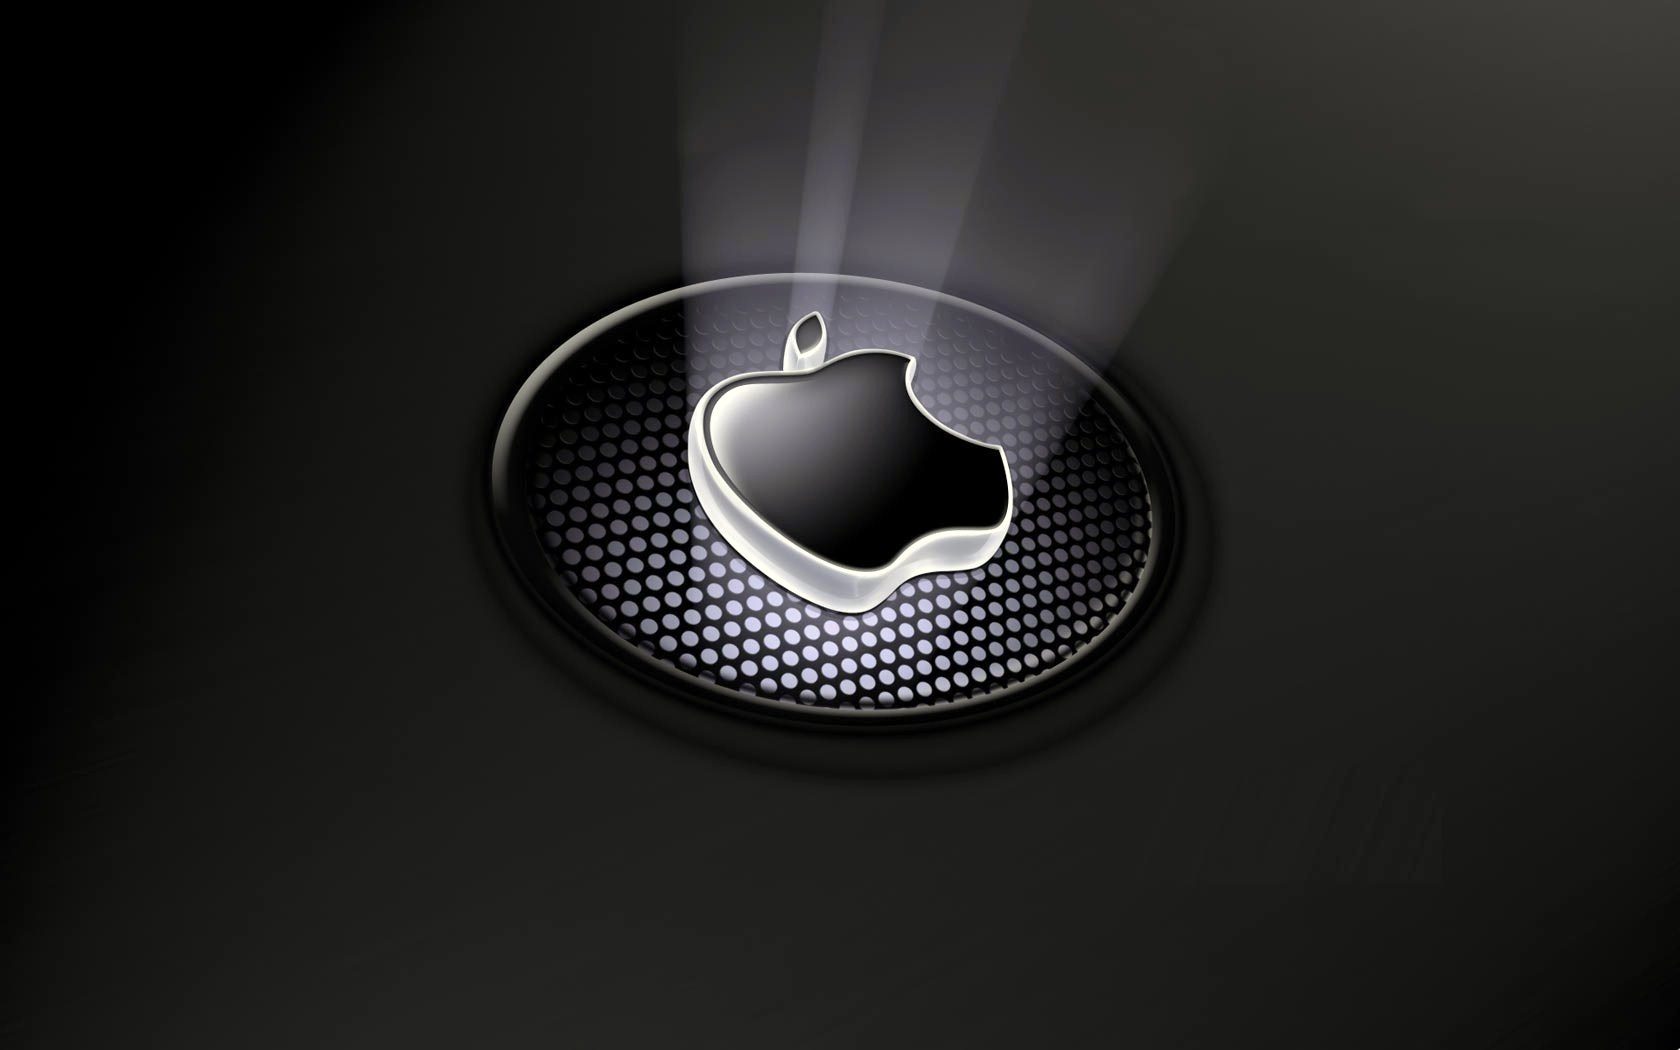 wallpapers 4k-hd Apple-alegorias.es (17)